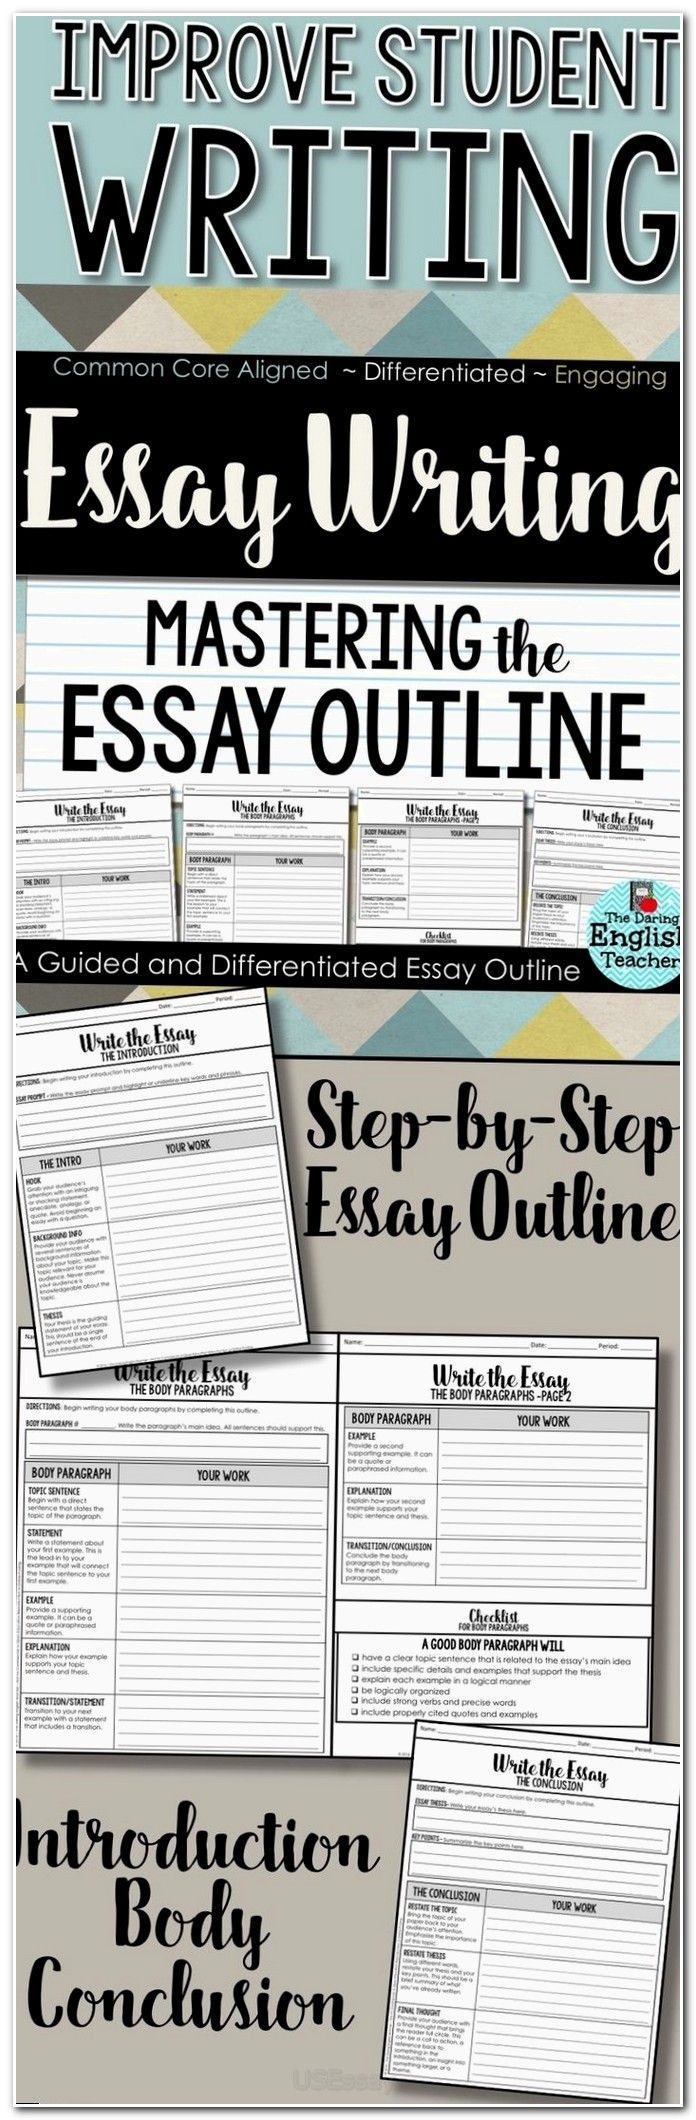 #essay #wrightessay pro life essay, how will a scholarship help me essay, career choice essay, law school scholarships, mba essay help, how to write an essay for history, sample essay prompts, professional article writing services, analyzing literature, comparative paragraph examples, a topic for an essay, how to write a business essay example, good opinion piece topics, hindi poem for competition, difference between compare and contrast example